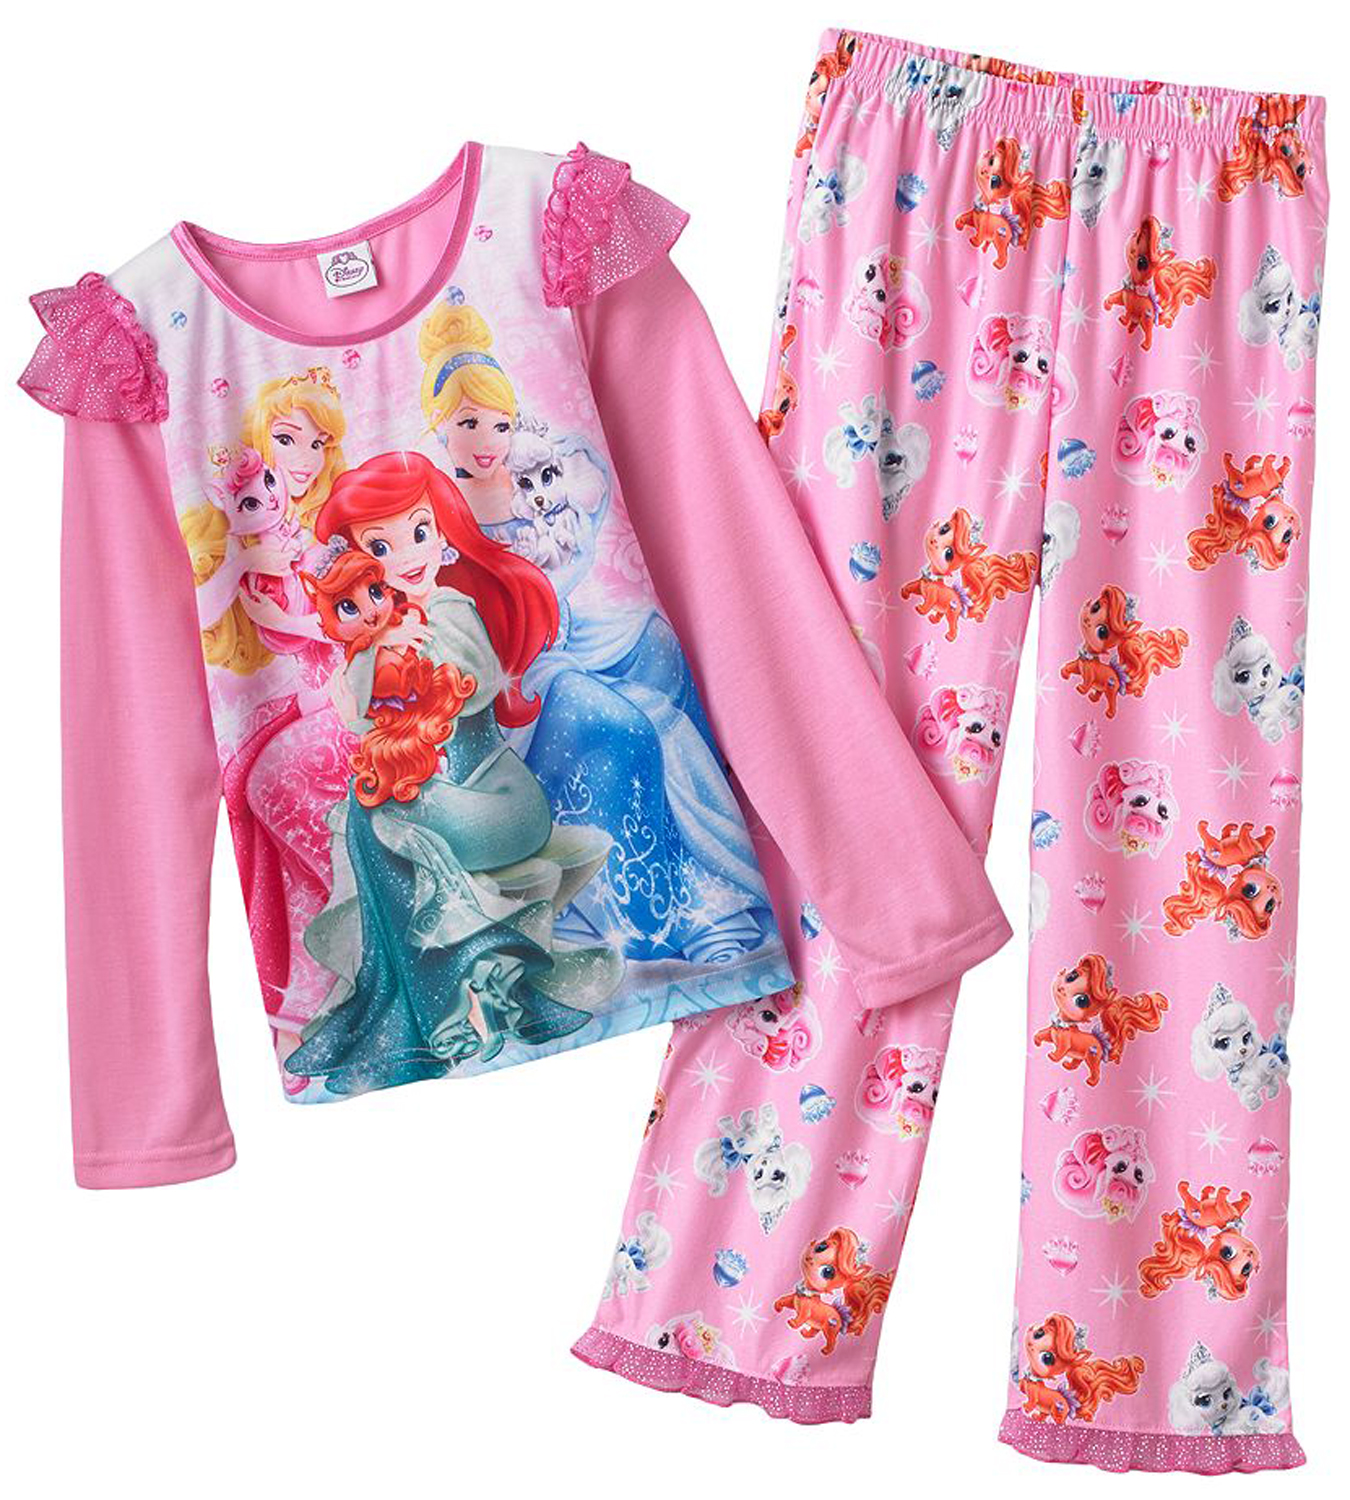 Disney Princess Little Girls' 2 Piece Palace Pets Knit Pajama Set at Sears.com